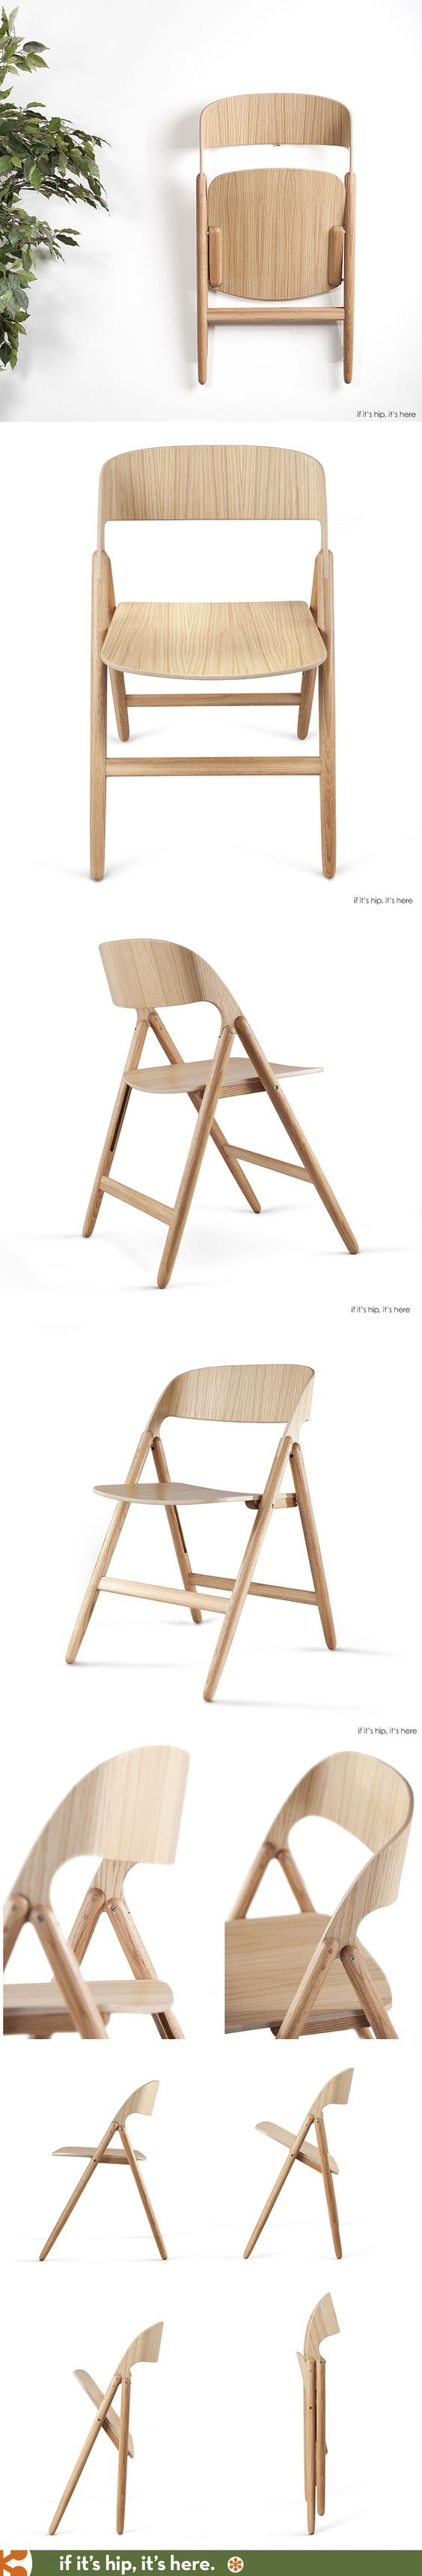 beautiful wooden folding chairs and chairs on pinterest